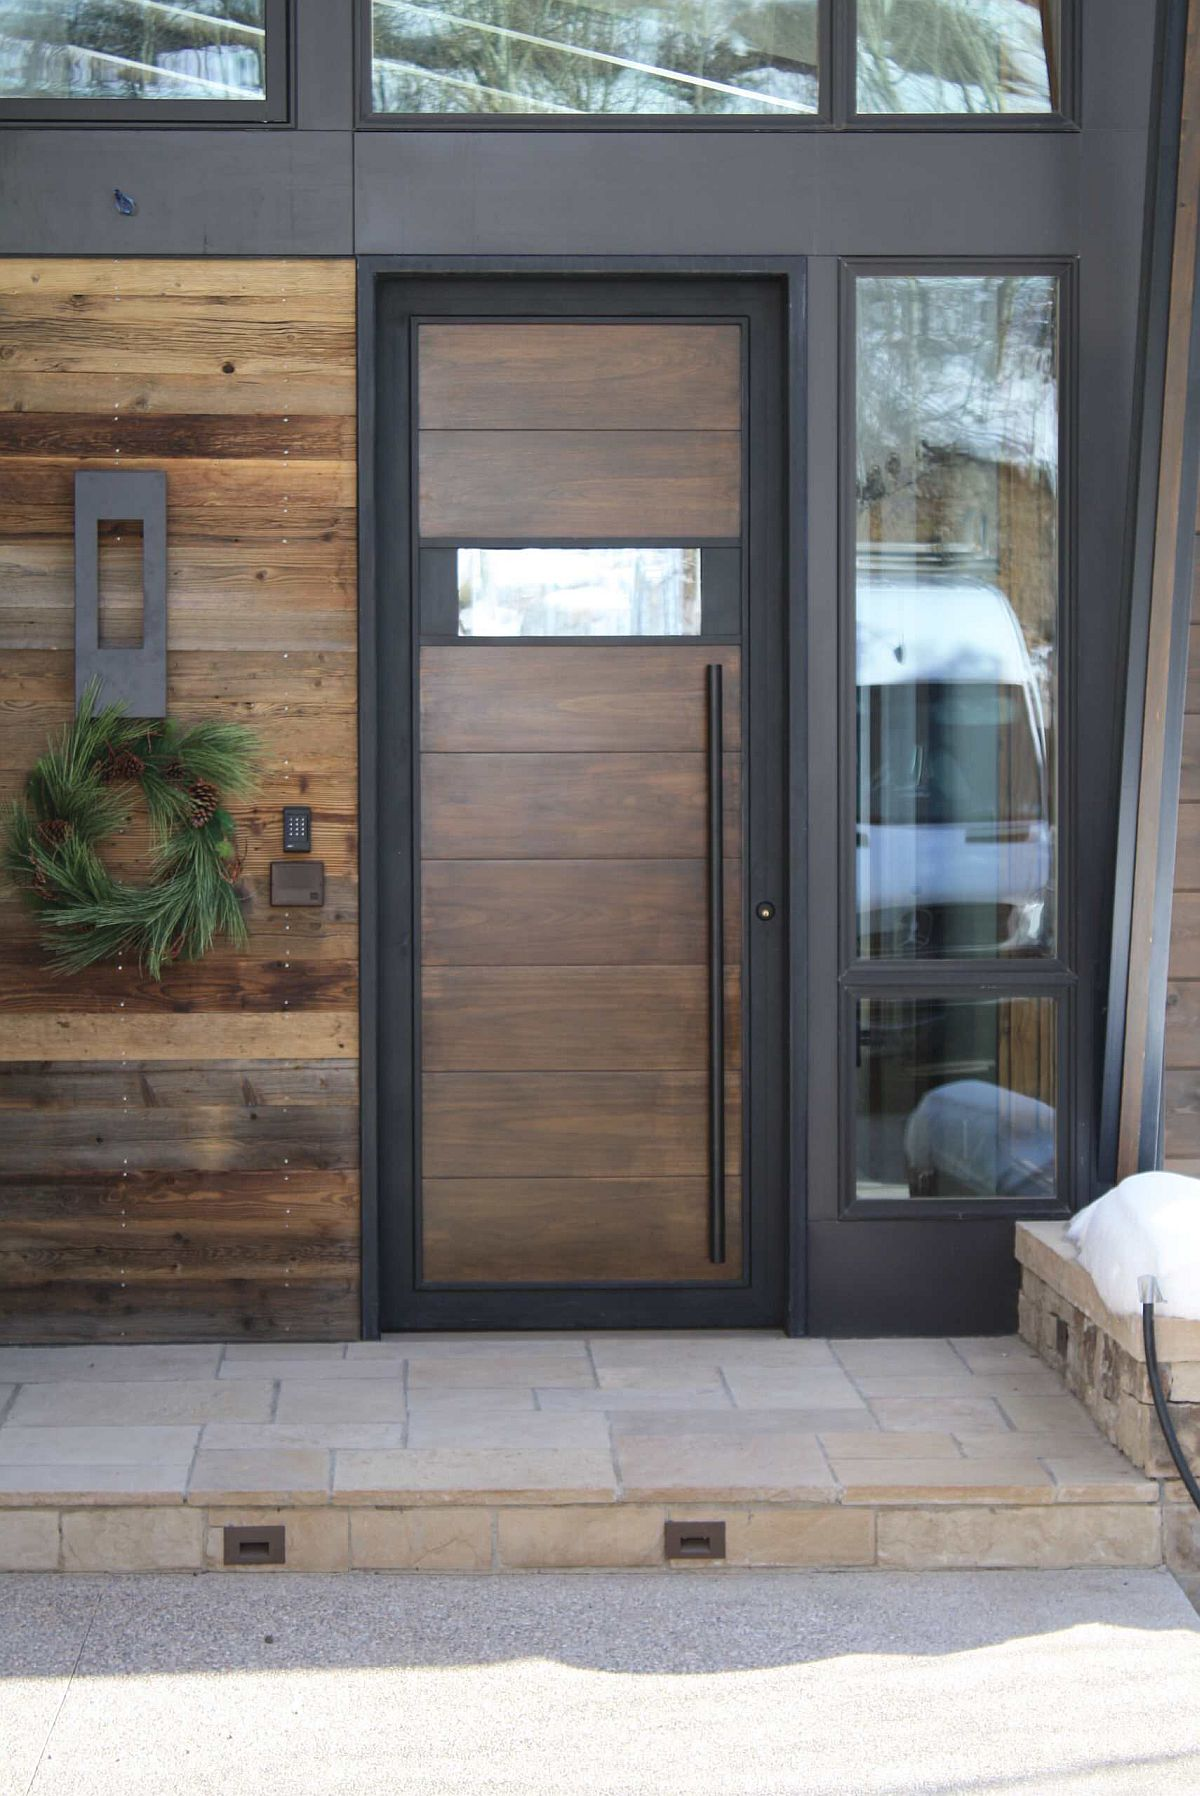 Exquisite reclaimed barn wood is carefully coupled with modern finsihes in this entryway